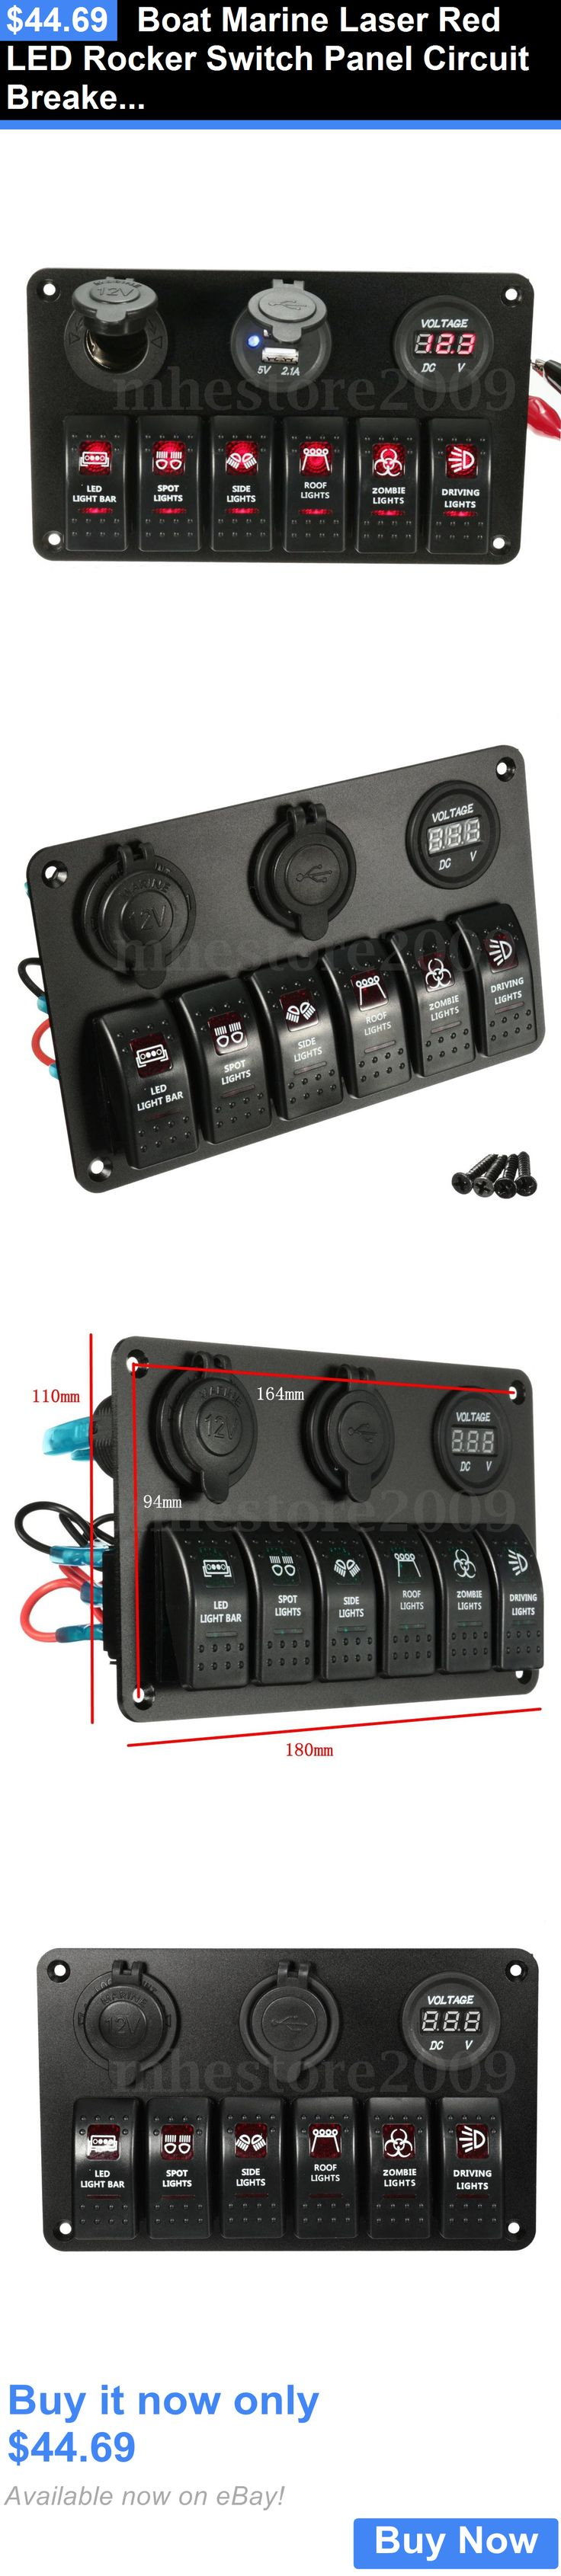 boat parts: Boat Marine Laser Red Led Rocker Switch Panel Circuit Breaker Usb Charger Socket BUY IT NOW ONLY: $44.69